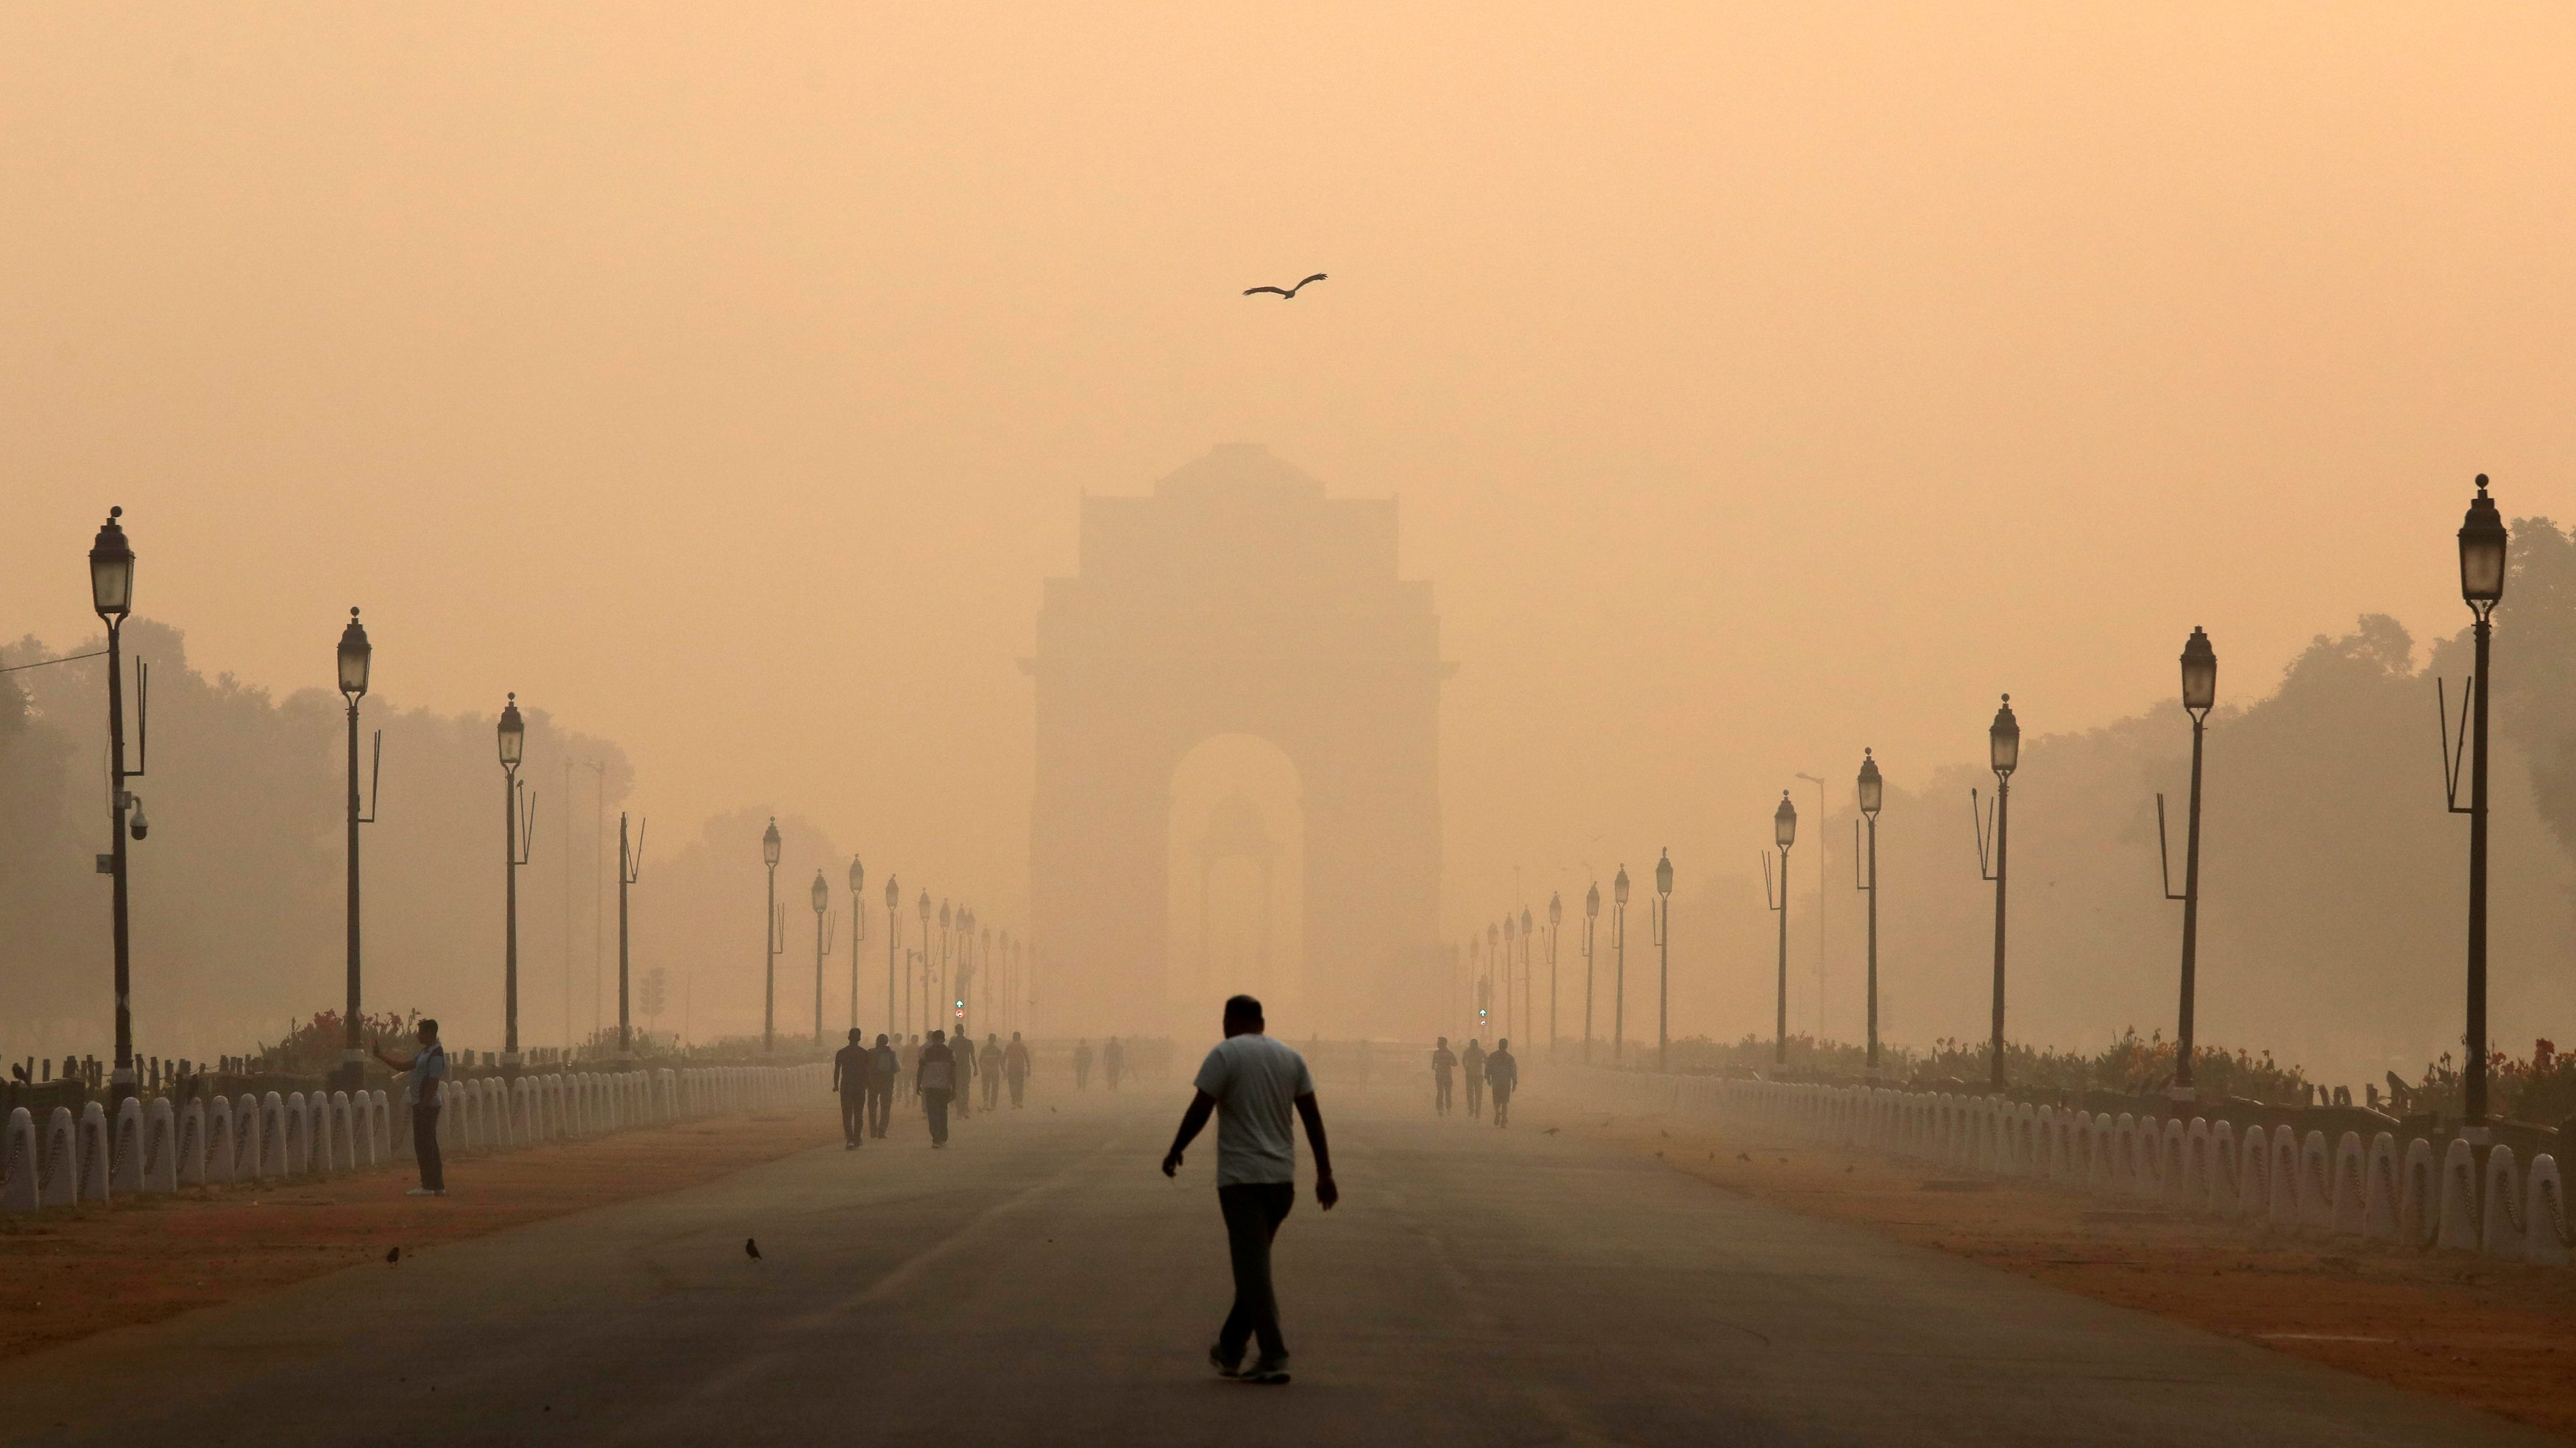 A man walks in front of the India Gate shrouded in smog in New Delhi